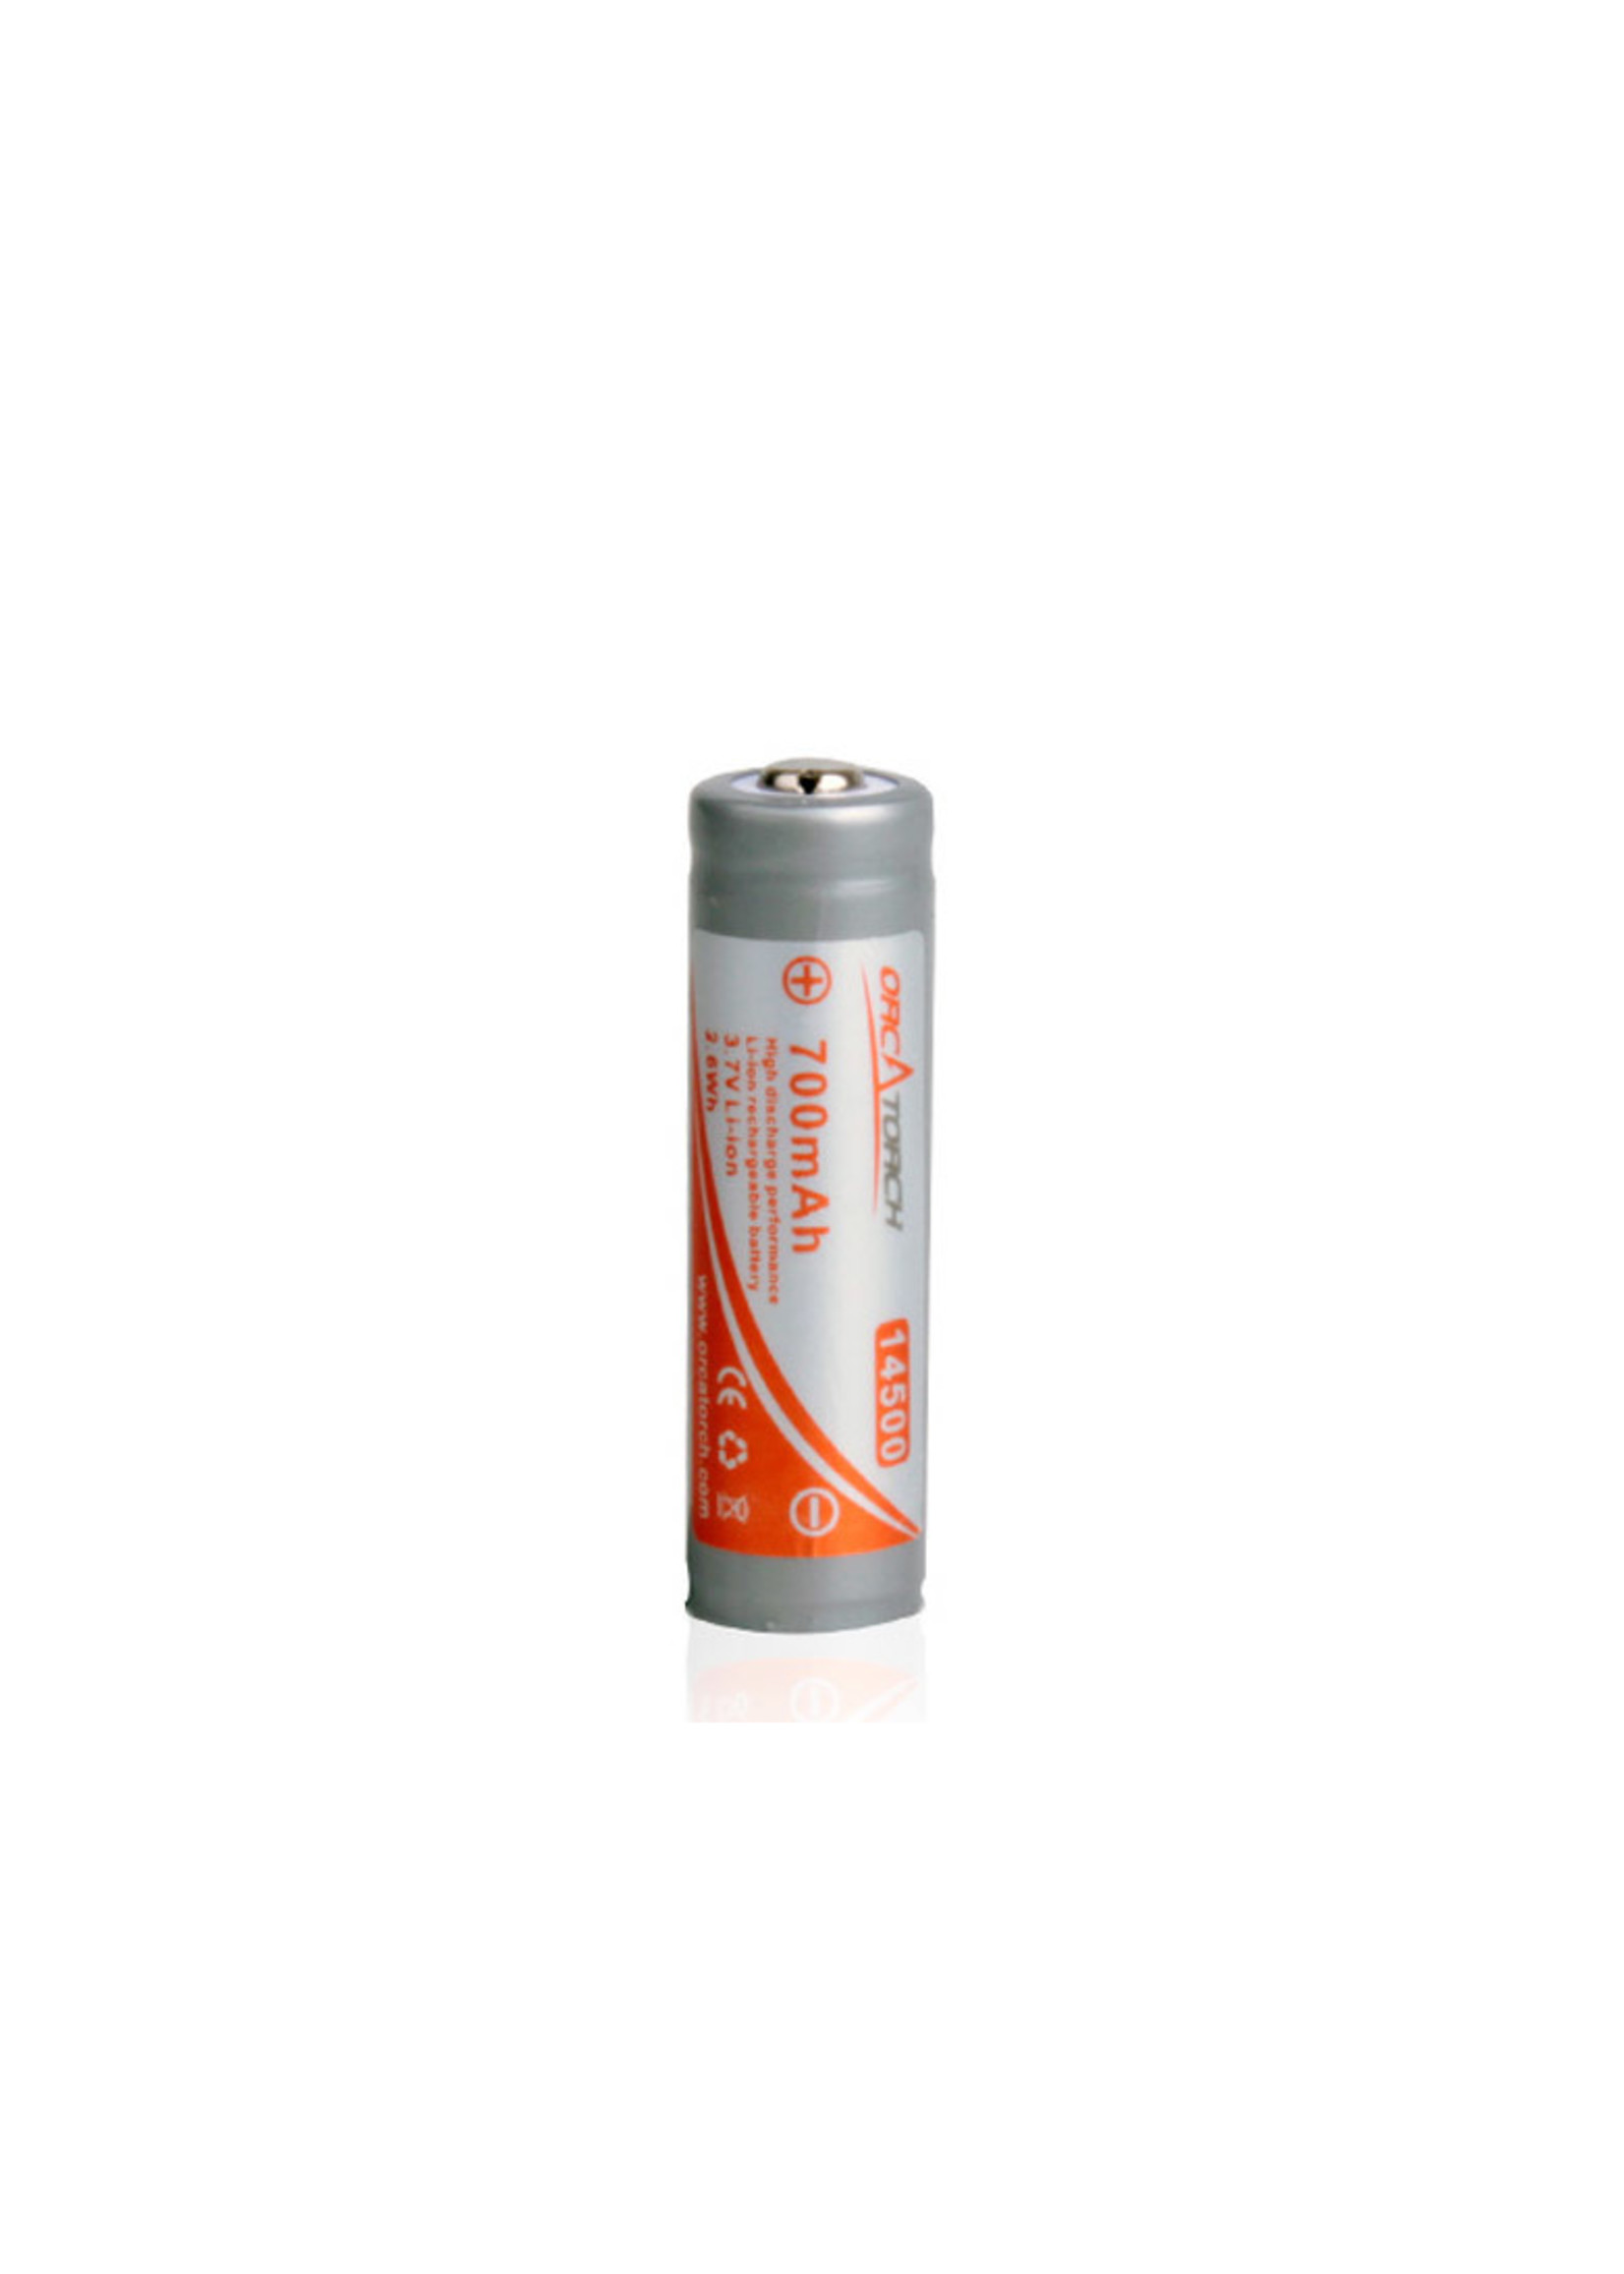 OrcaTorch OrcaTorch 14500 Rechargeable Battery